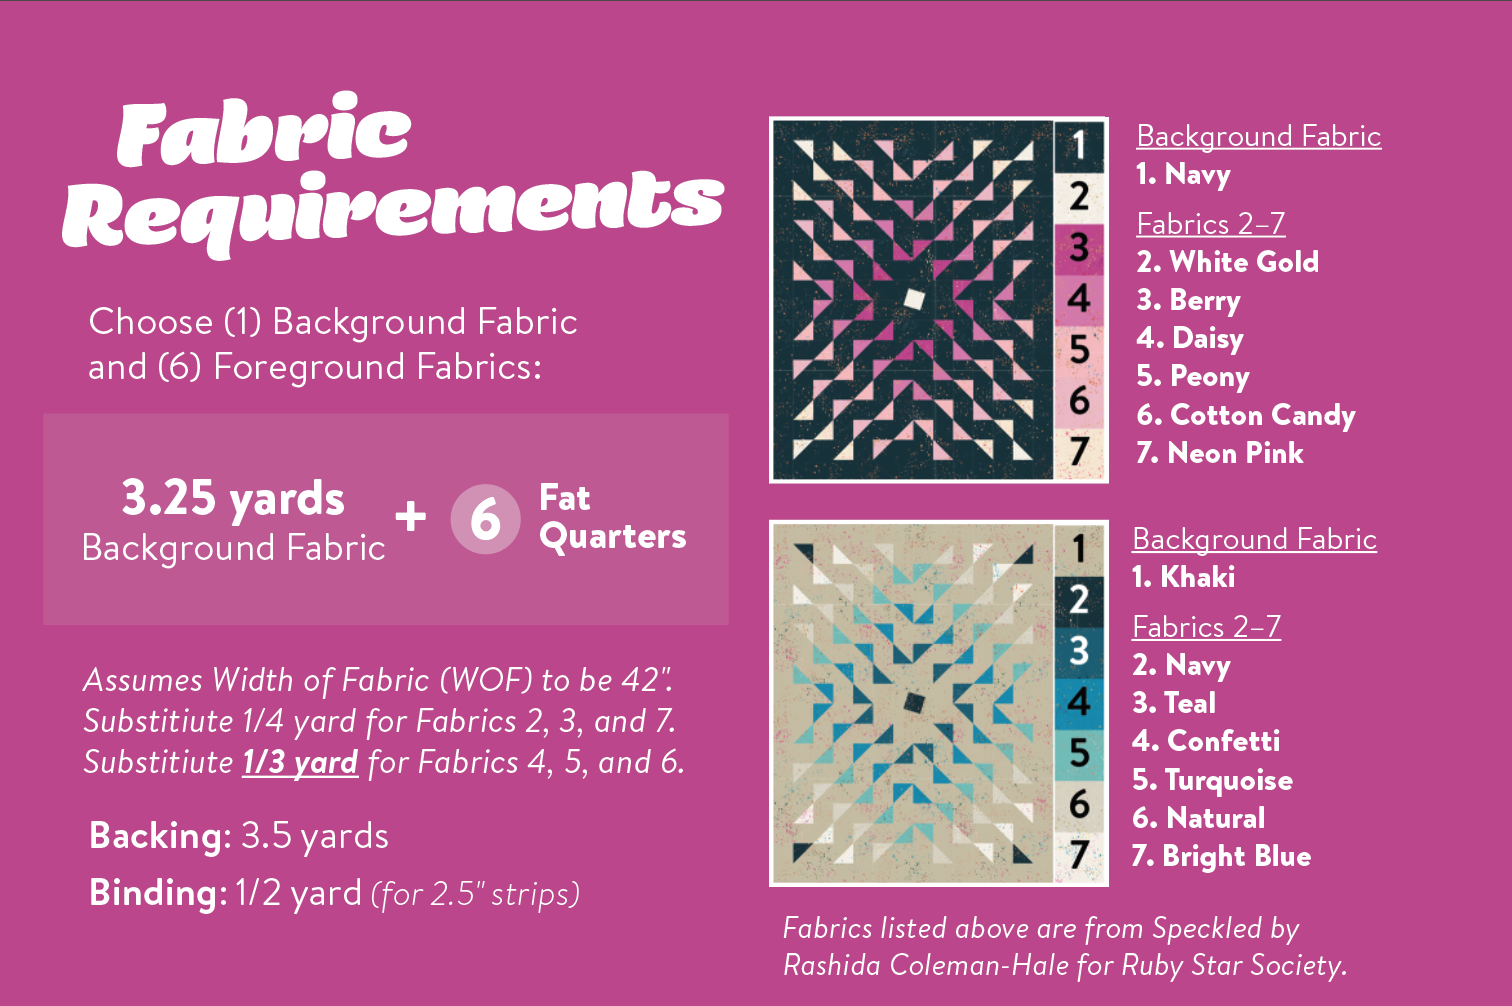 Mythos_Fabric-Requirements.png